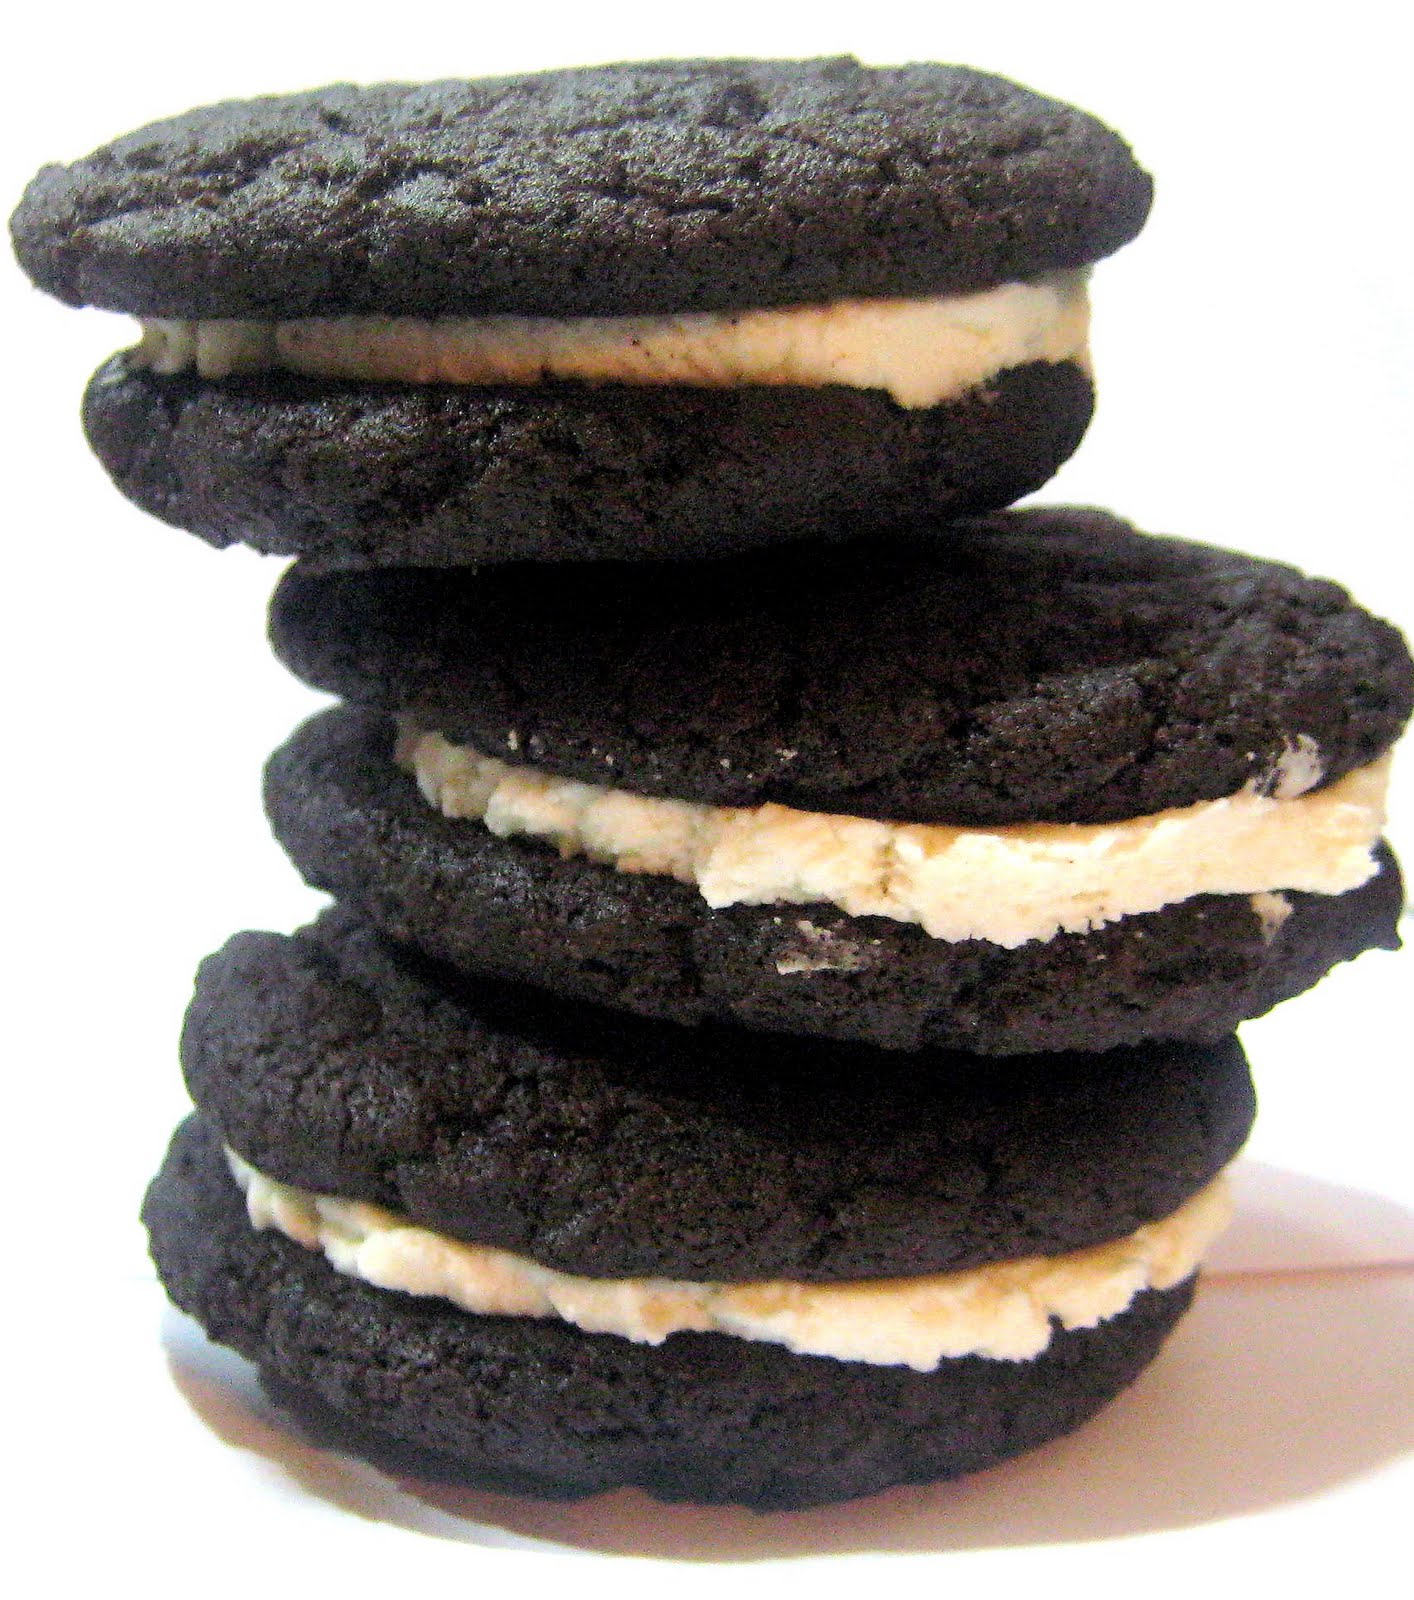 A Bitchin' Kitchen: Homemade Oreos